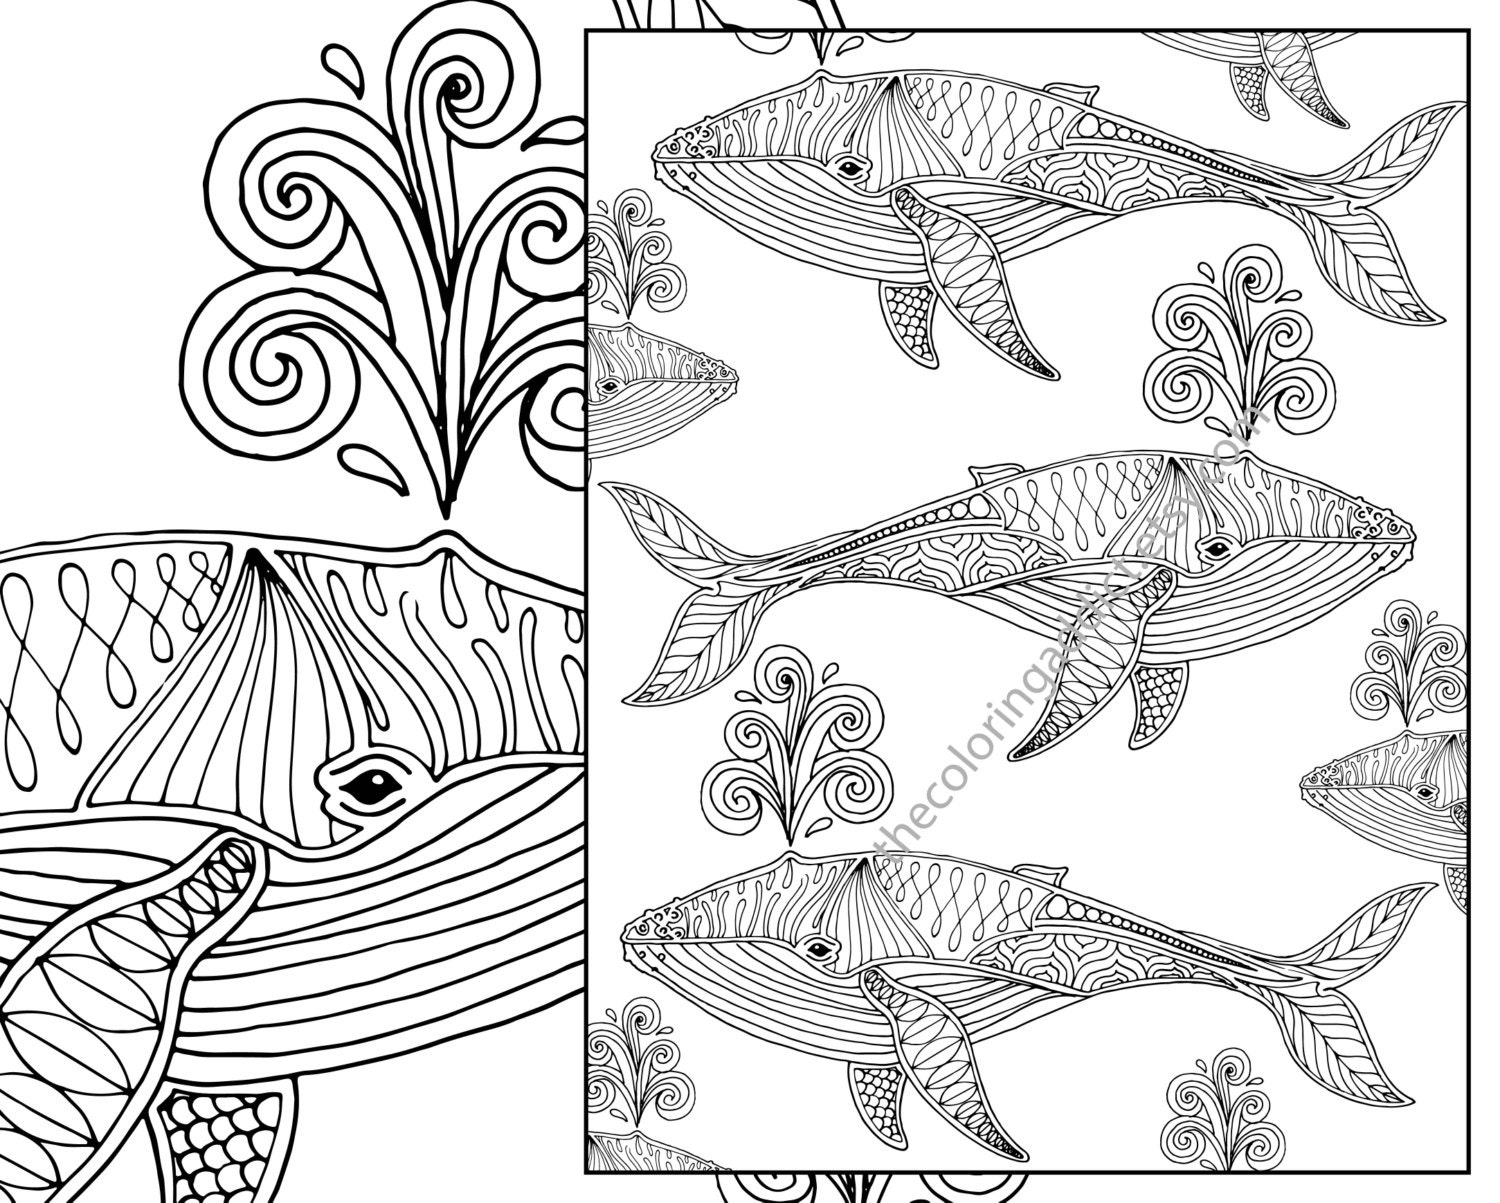 whale adult coloring page nautical adult coloring sheet